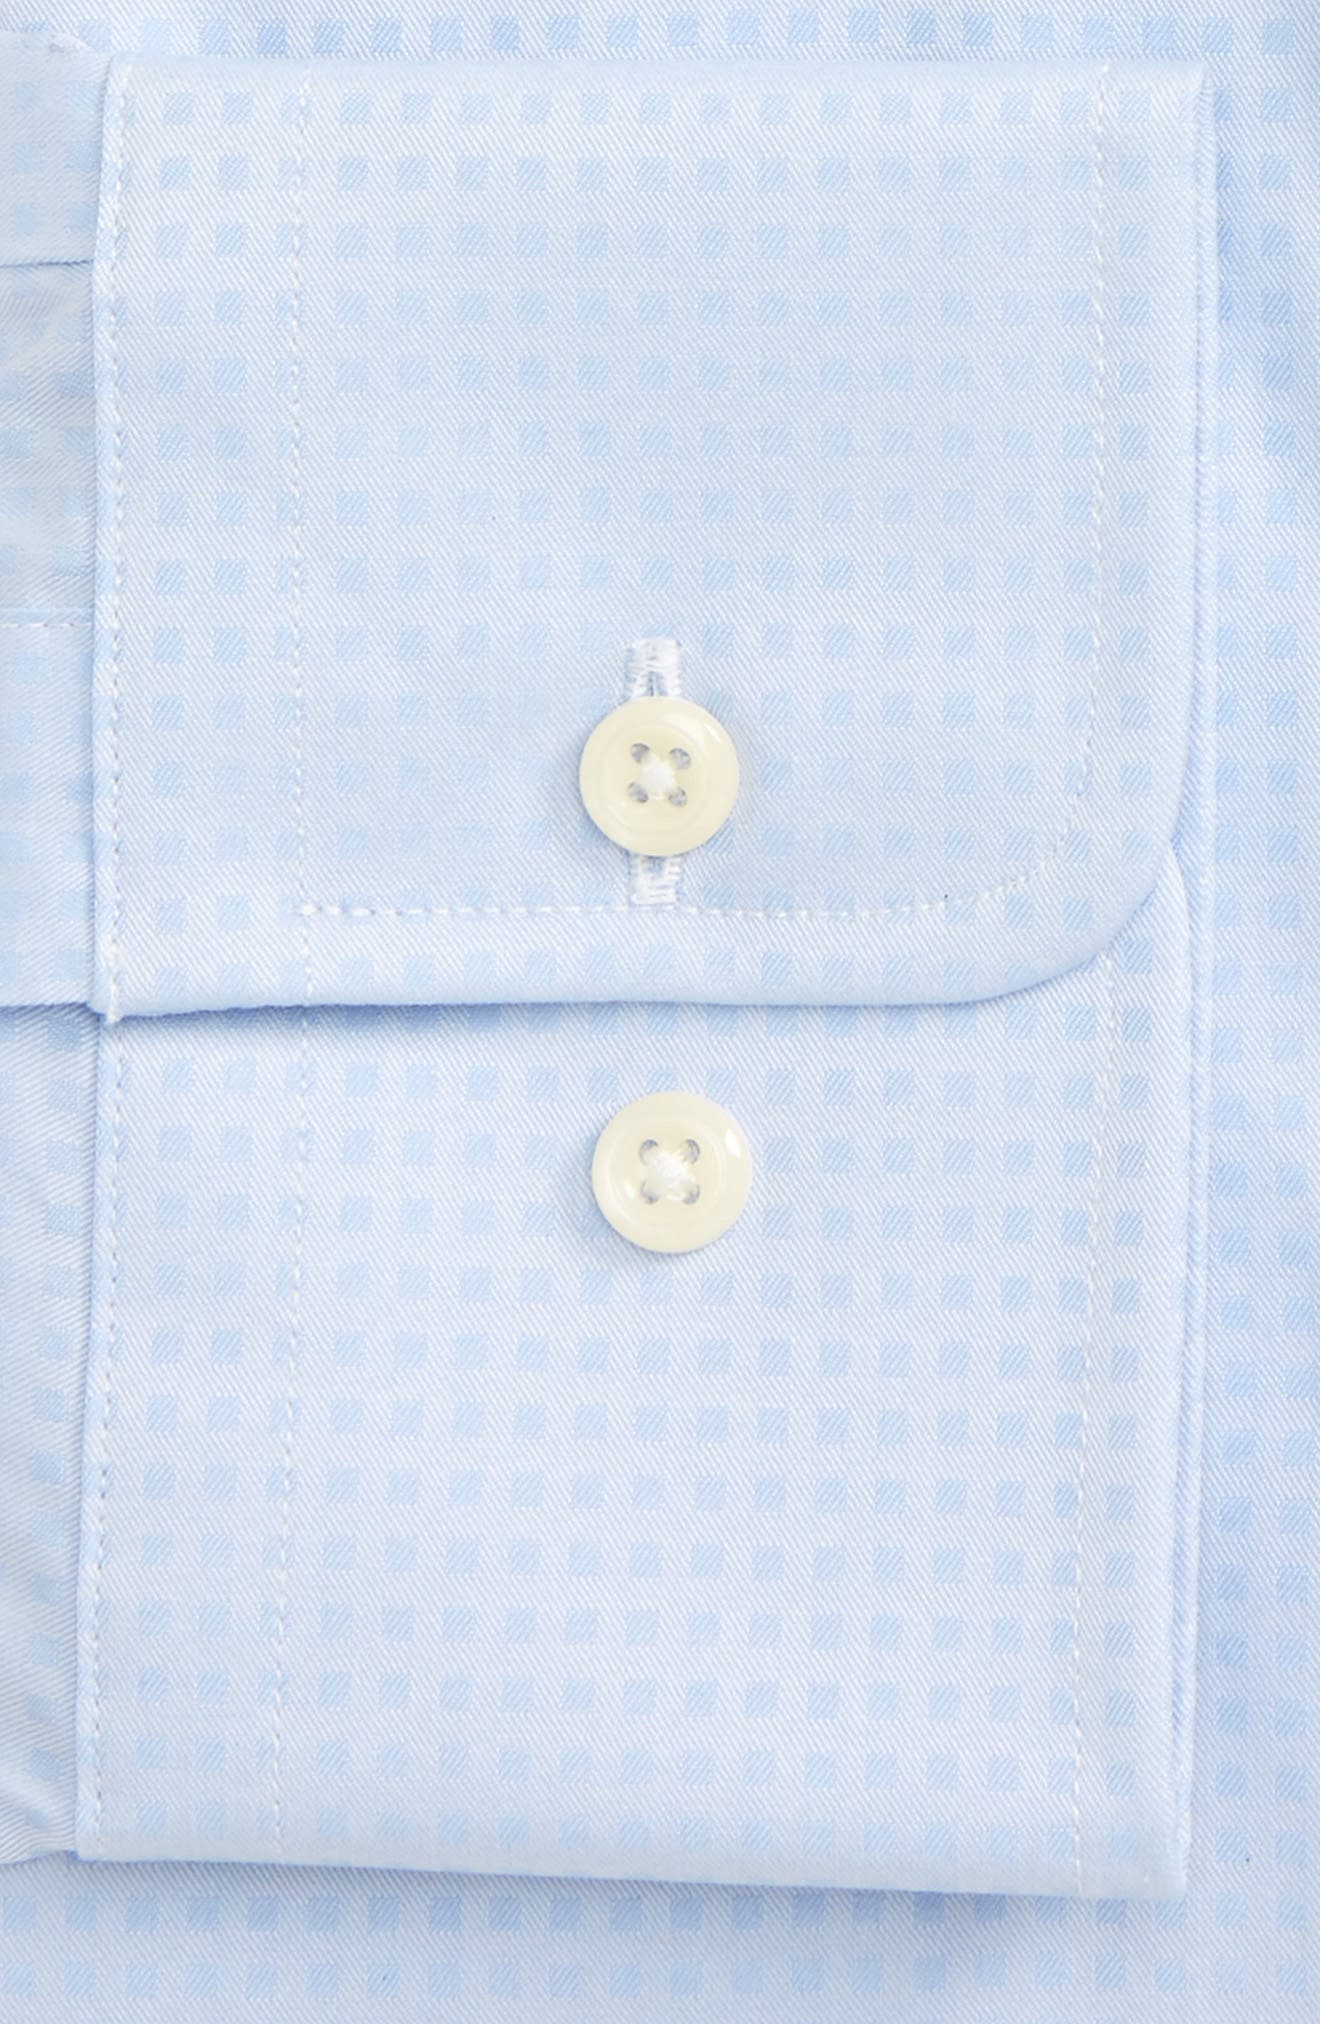 Regular Fit Check Dress Shirt,                             Alternate thumbnail 2, color,                             Sky